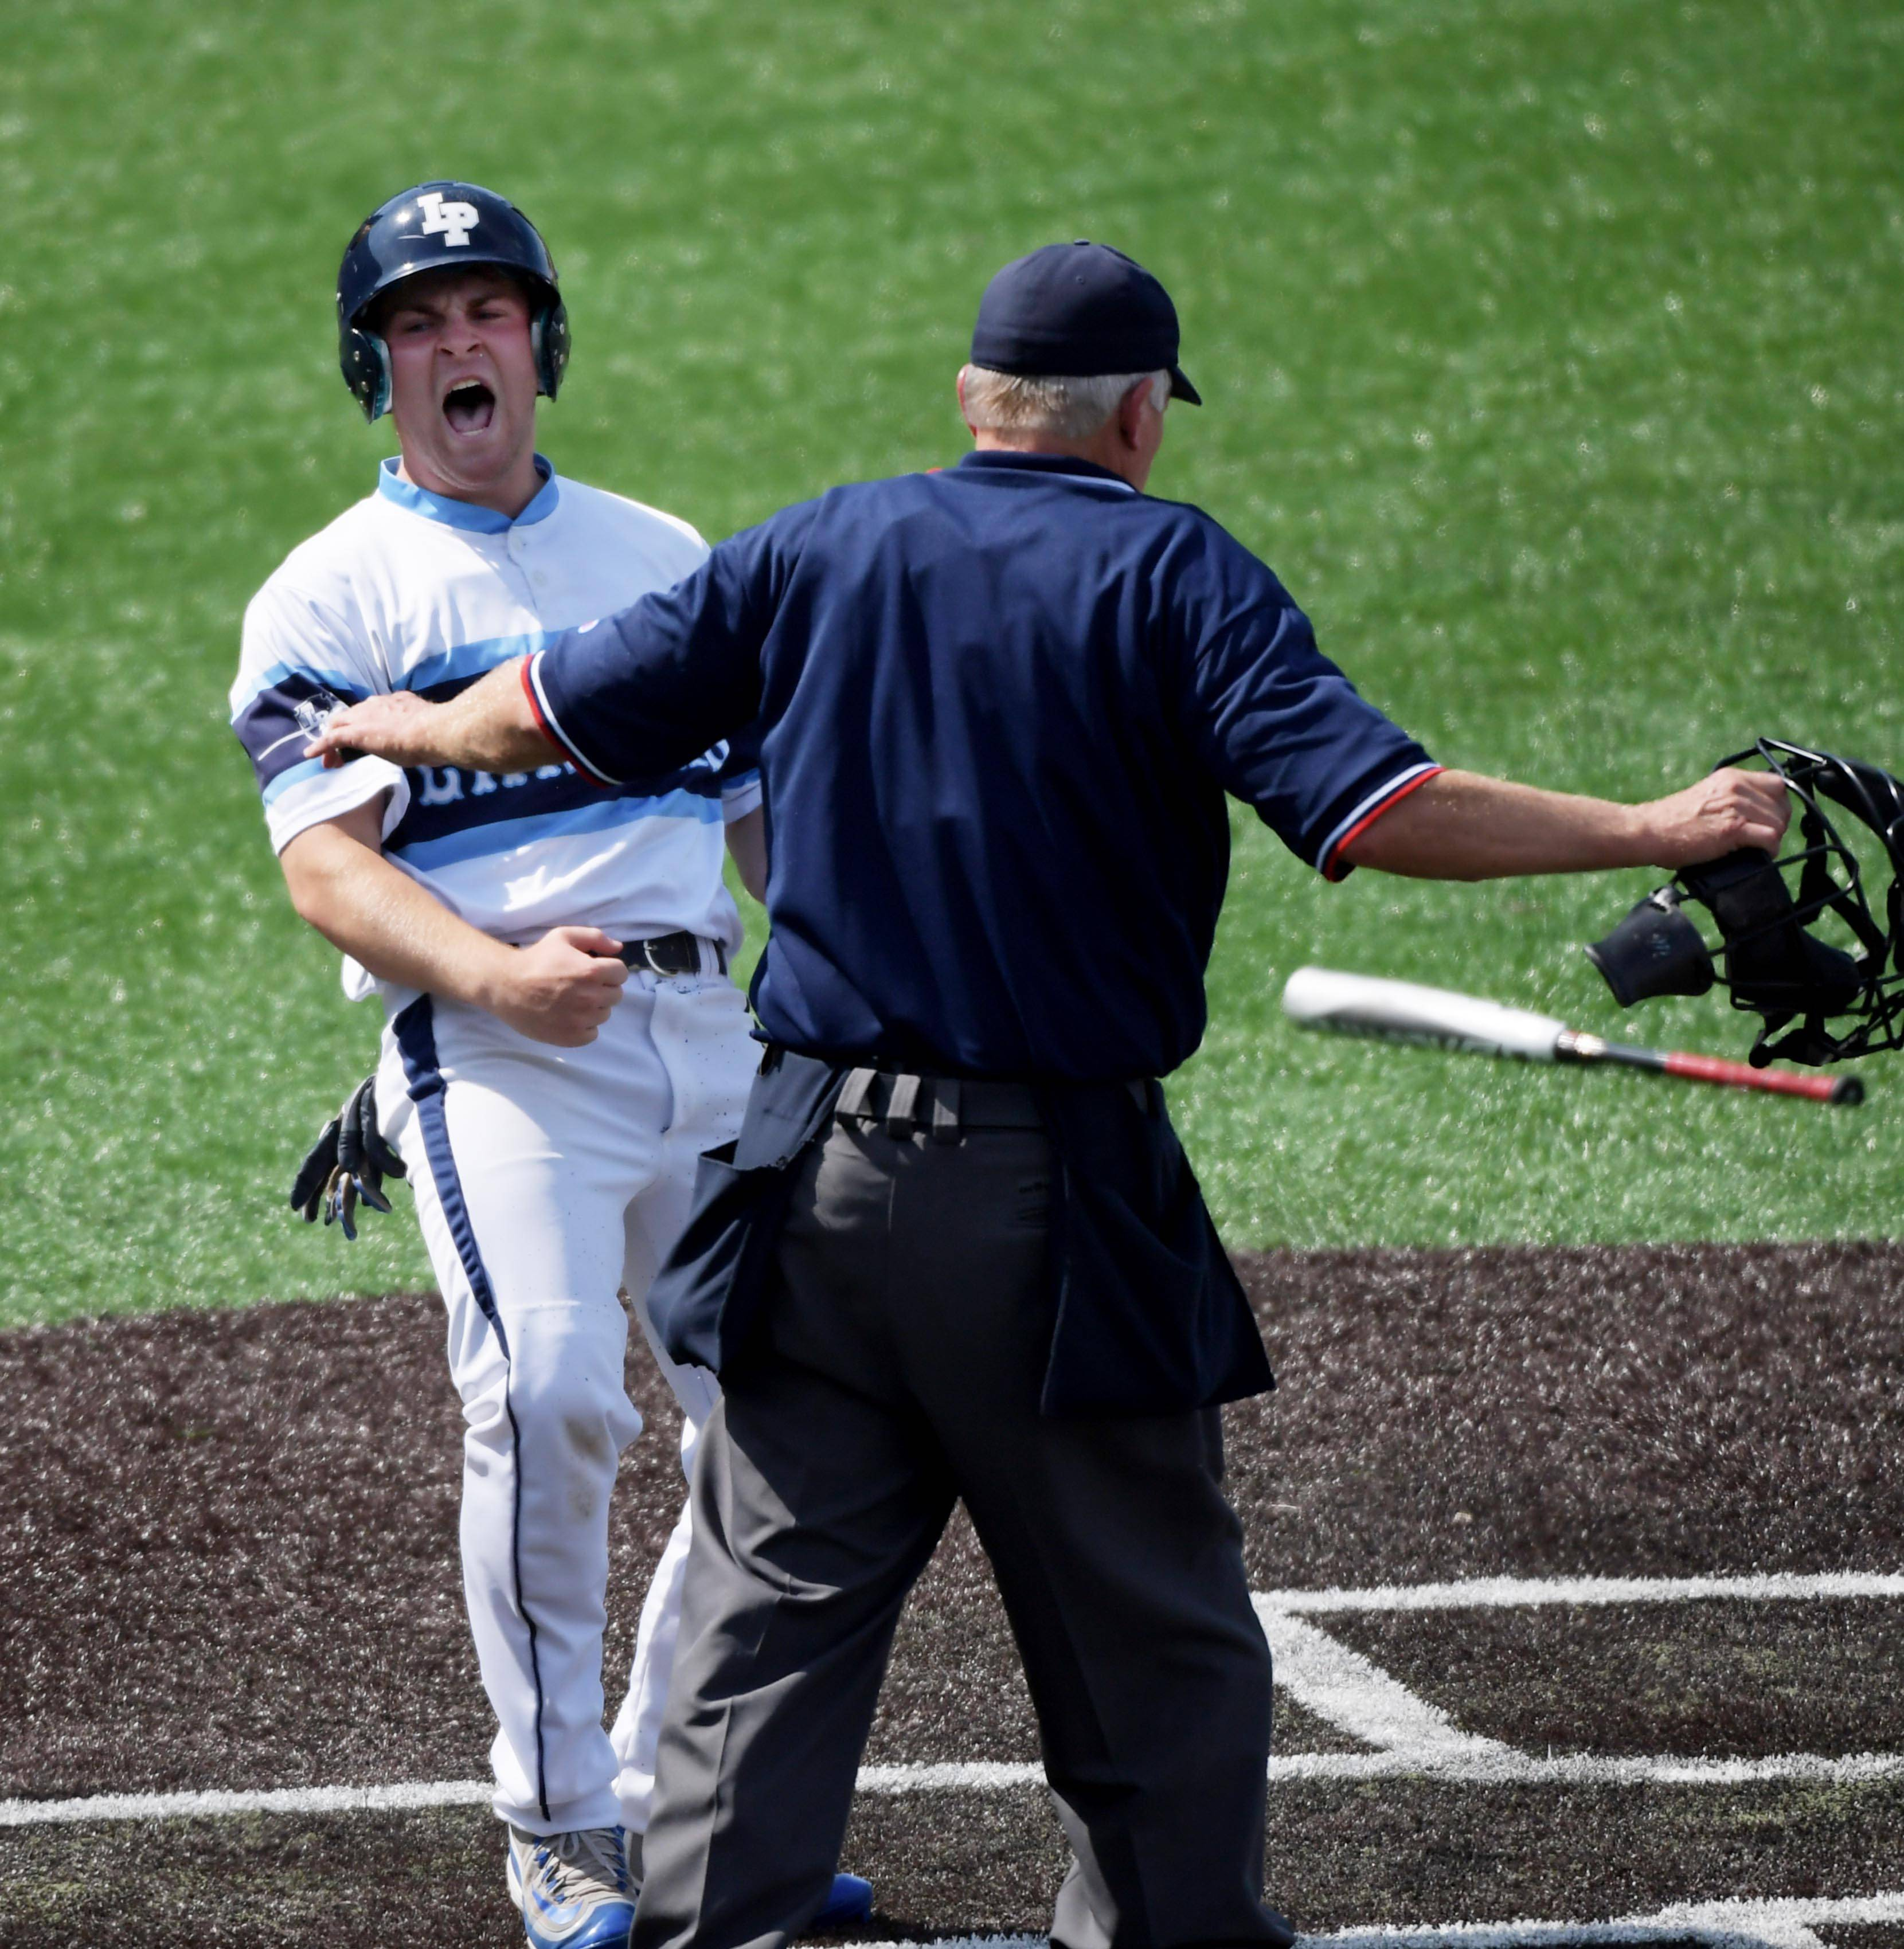 Lake Park's Anthony Baturin reacts after scoring against Sandburg in the Class 4A state baseball third place game at Route 66 Stadium in Joliet Saturday.